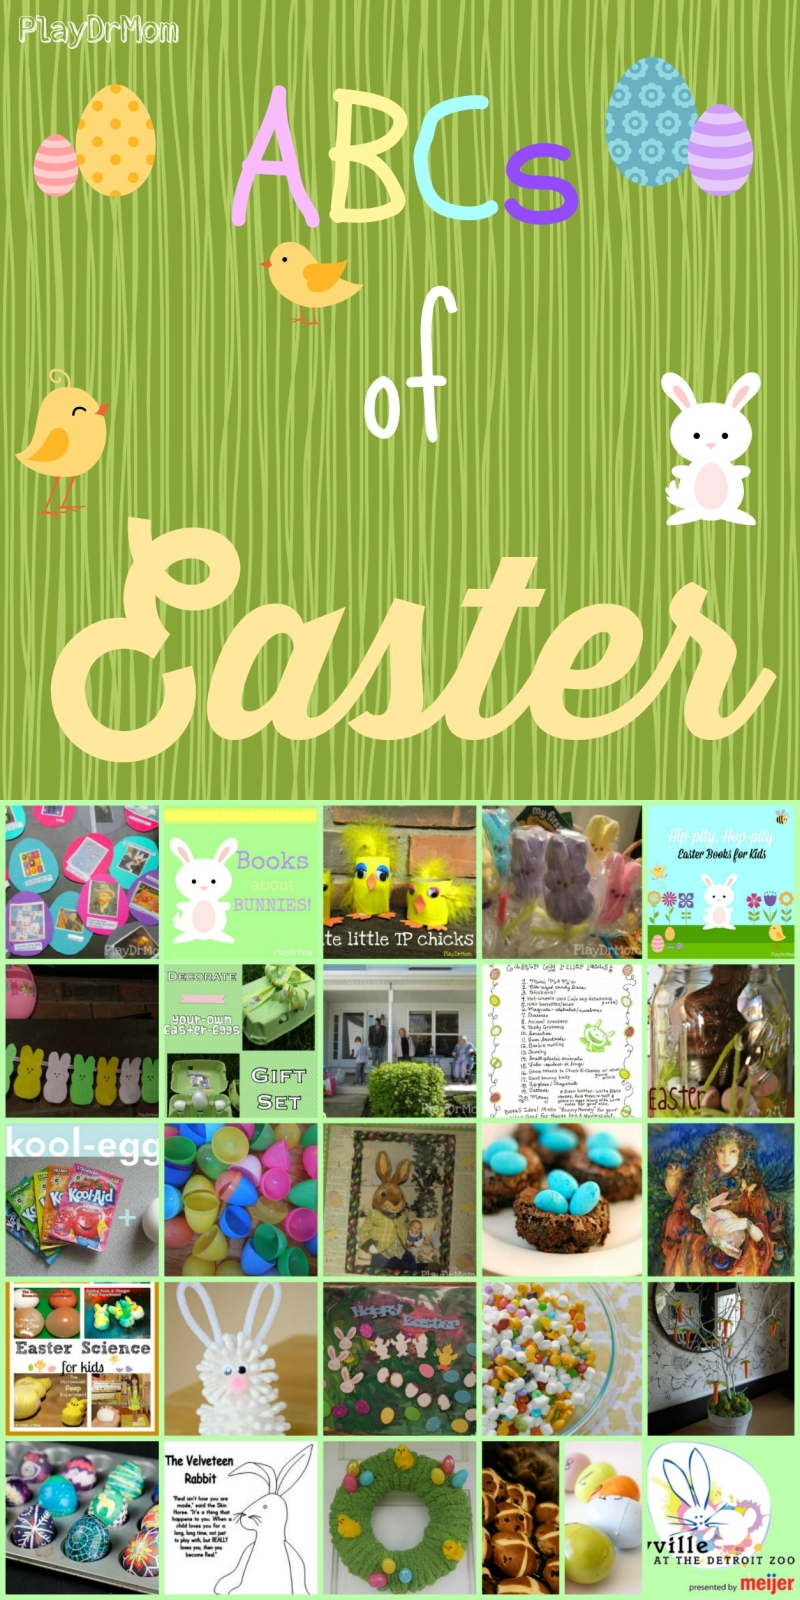 PlayDrMom rounds up the ABCs of Easter!